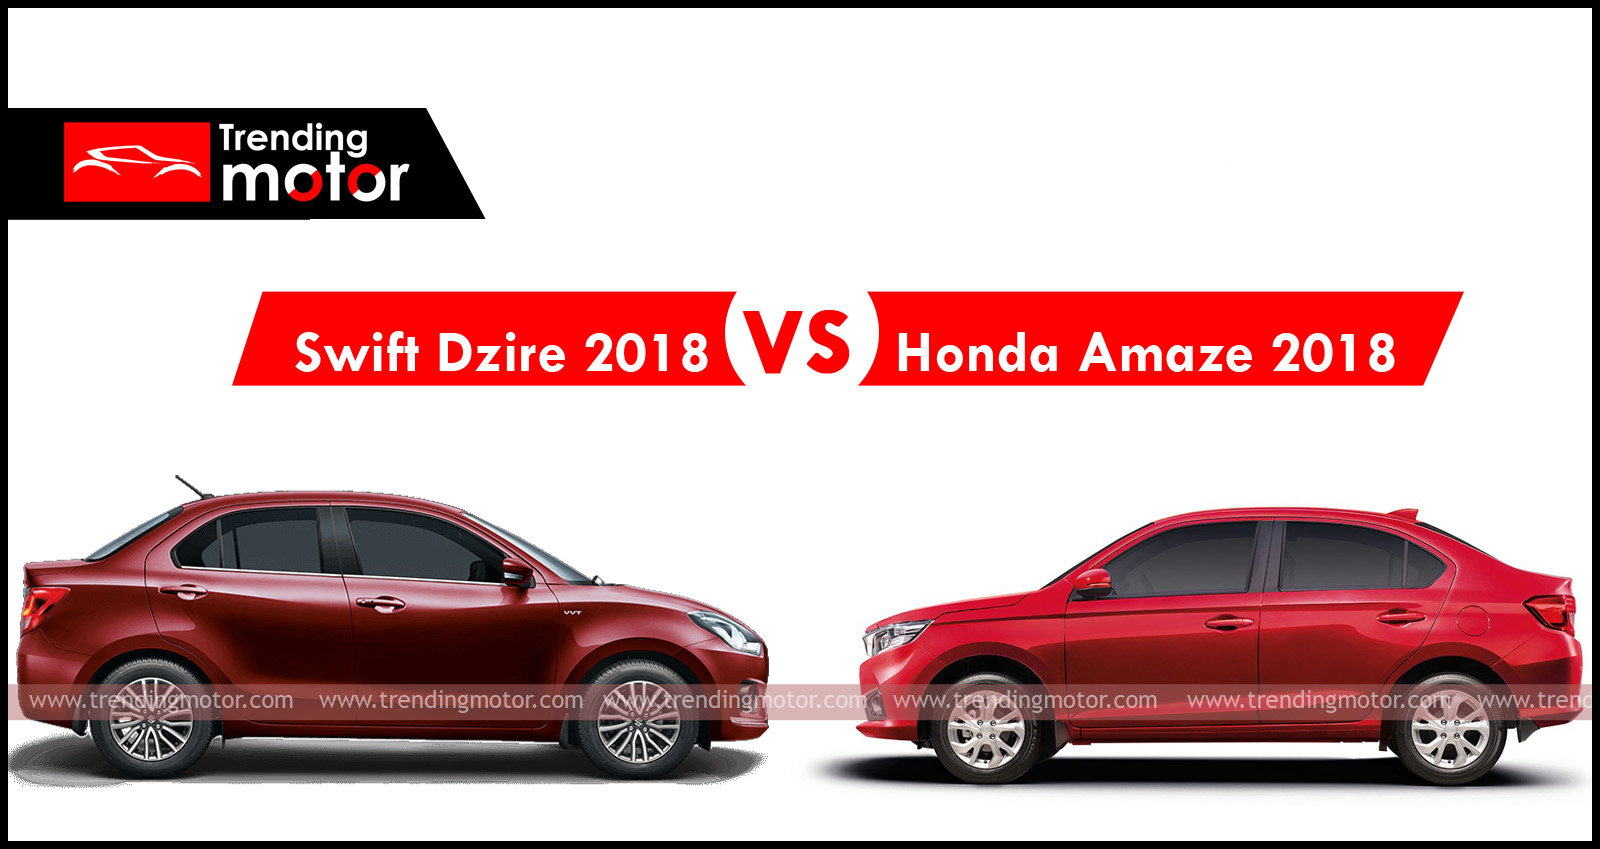 Honda Amaze 2018 VS Maruti Dzire 2018 - Which car to Buy?